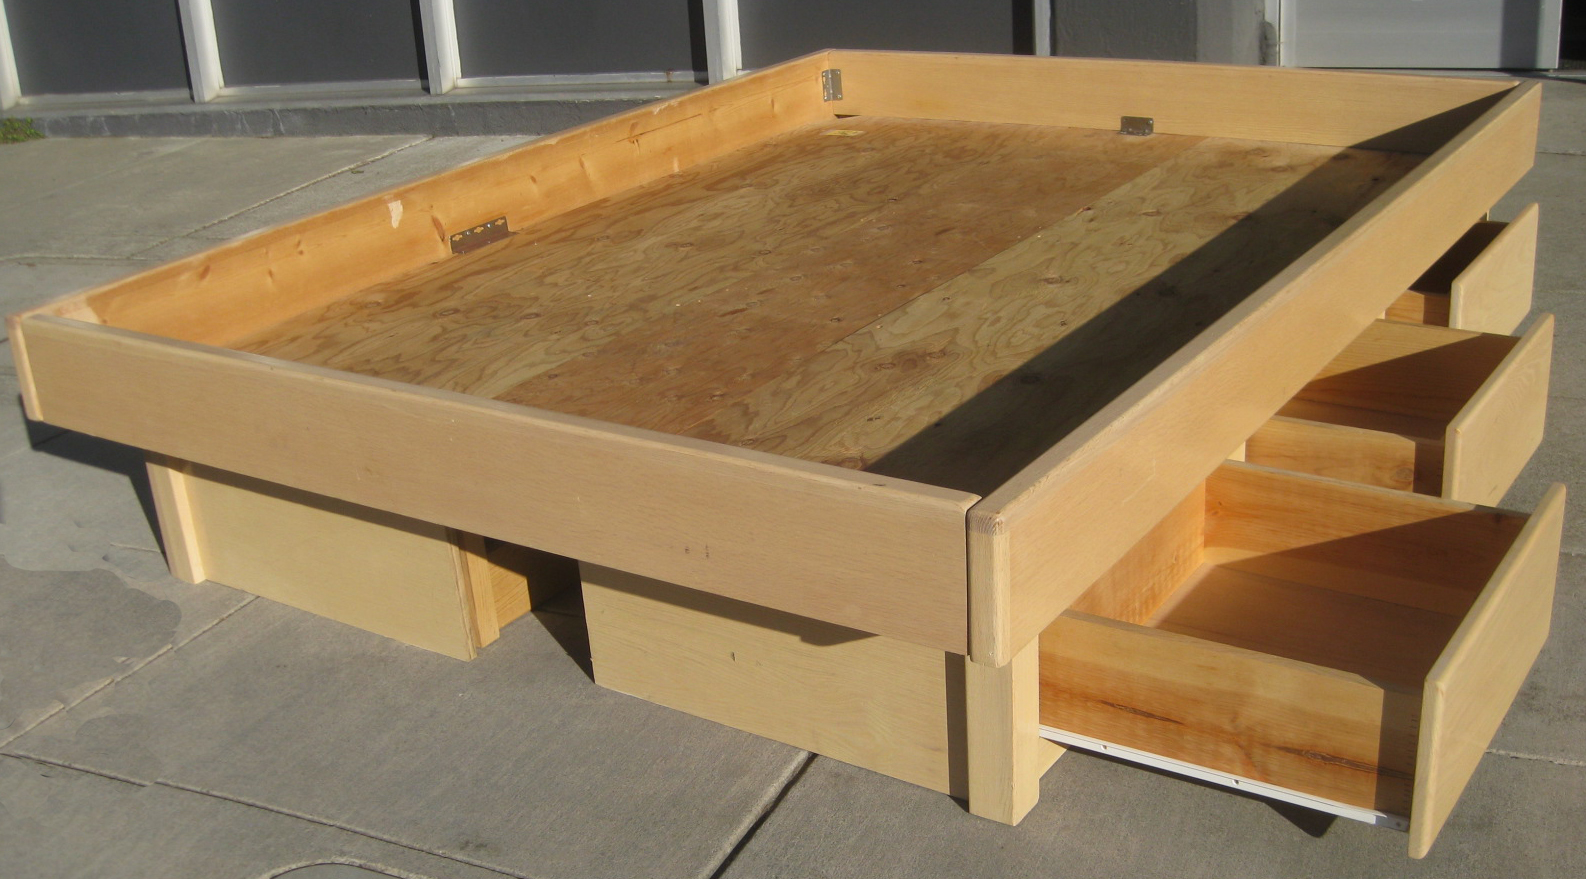 Plans To Build A Platform Bed With Drawers | DIY Woodworking Projects